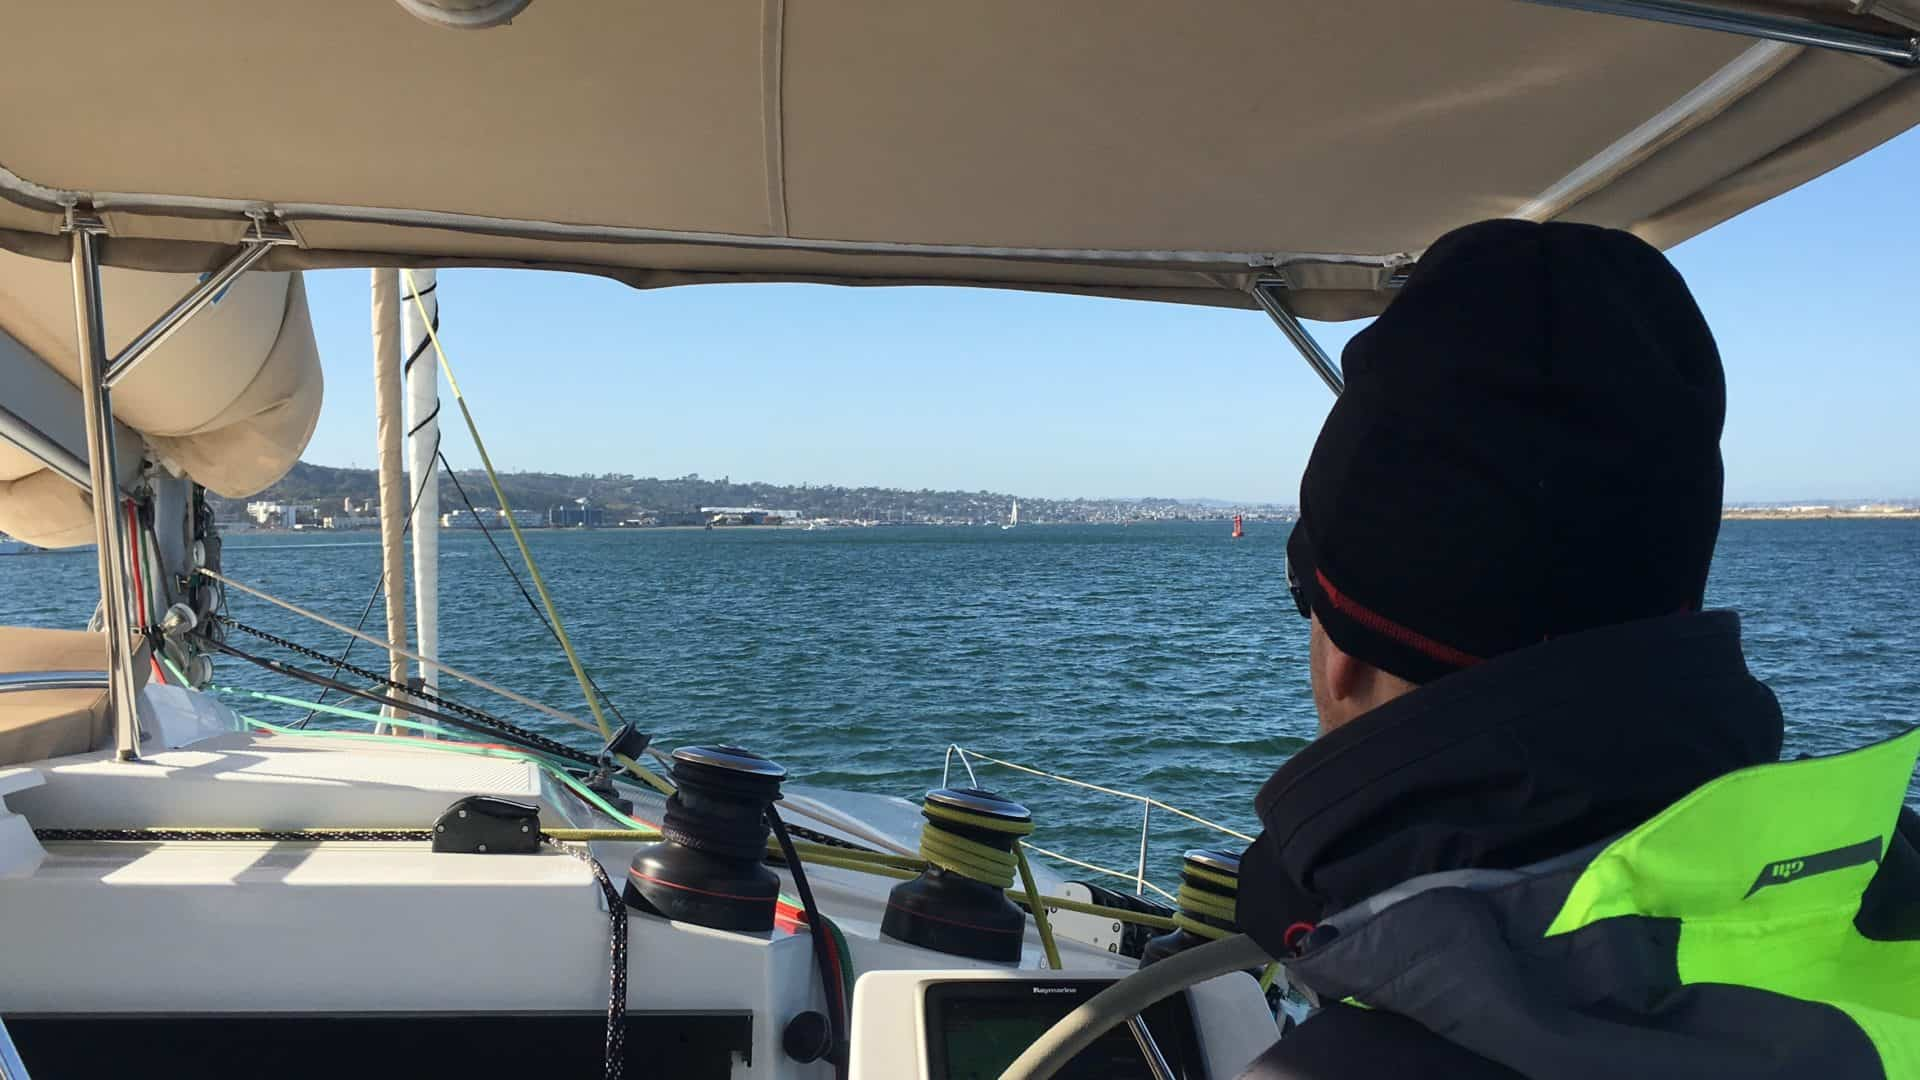 Matt at the helm of a Fountaine Pajot Helia 44